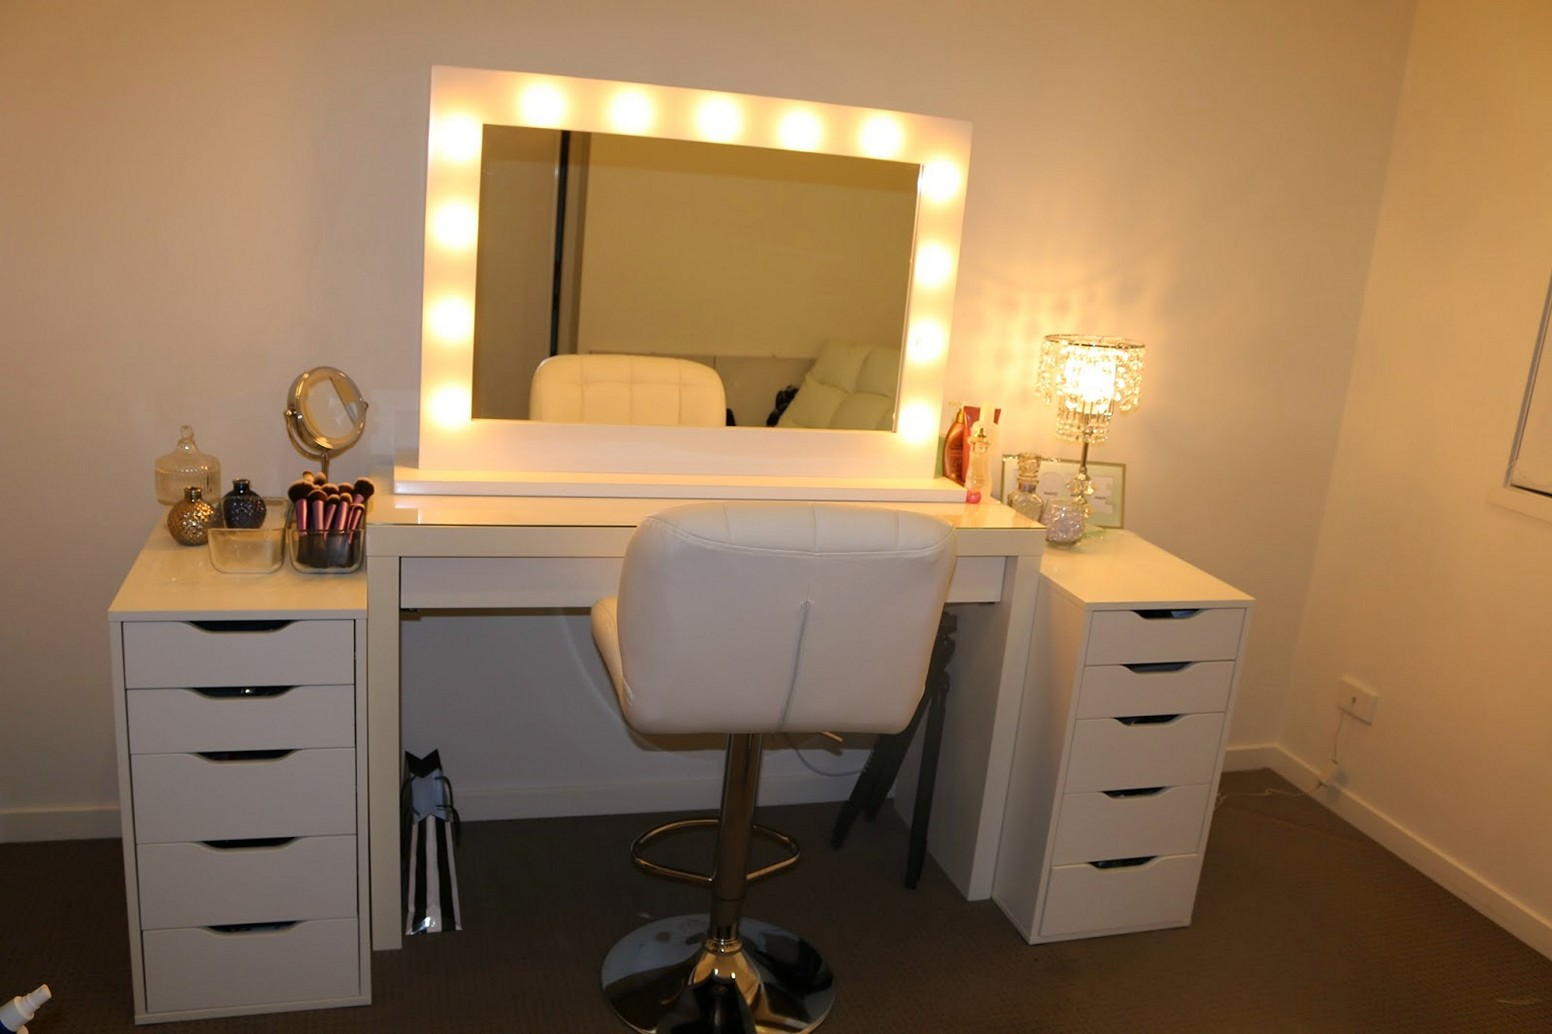 Broadway Makeup Mirror | Hollywood Vanity Mirror with Lights | Mirror Lighted Vanity